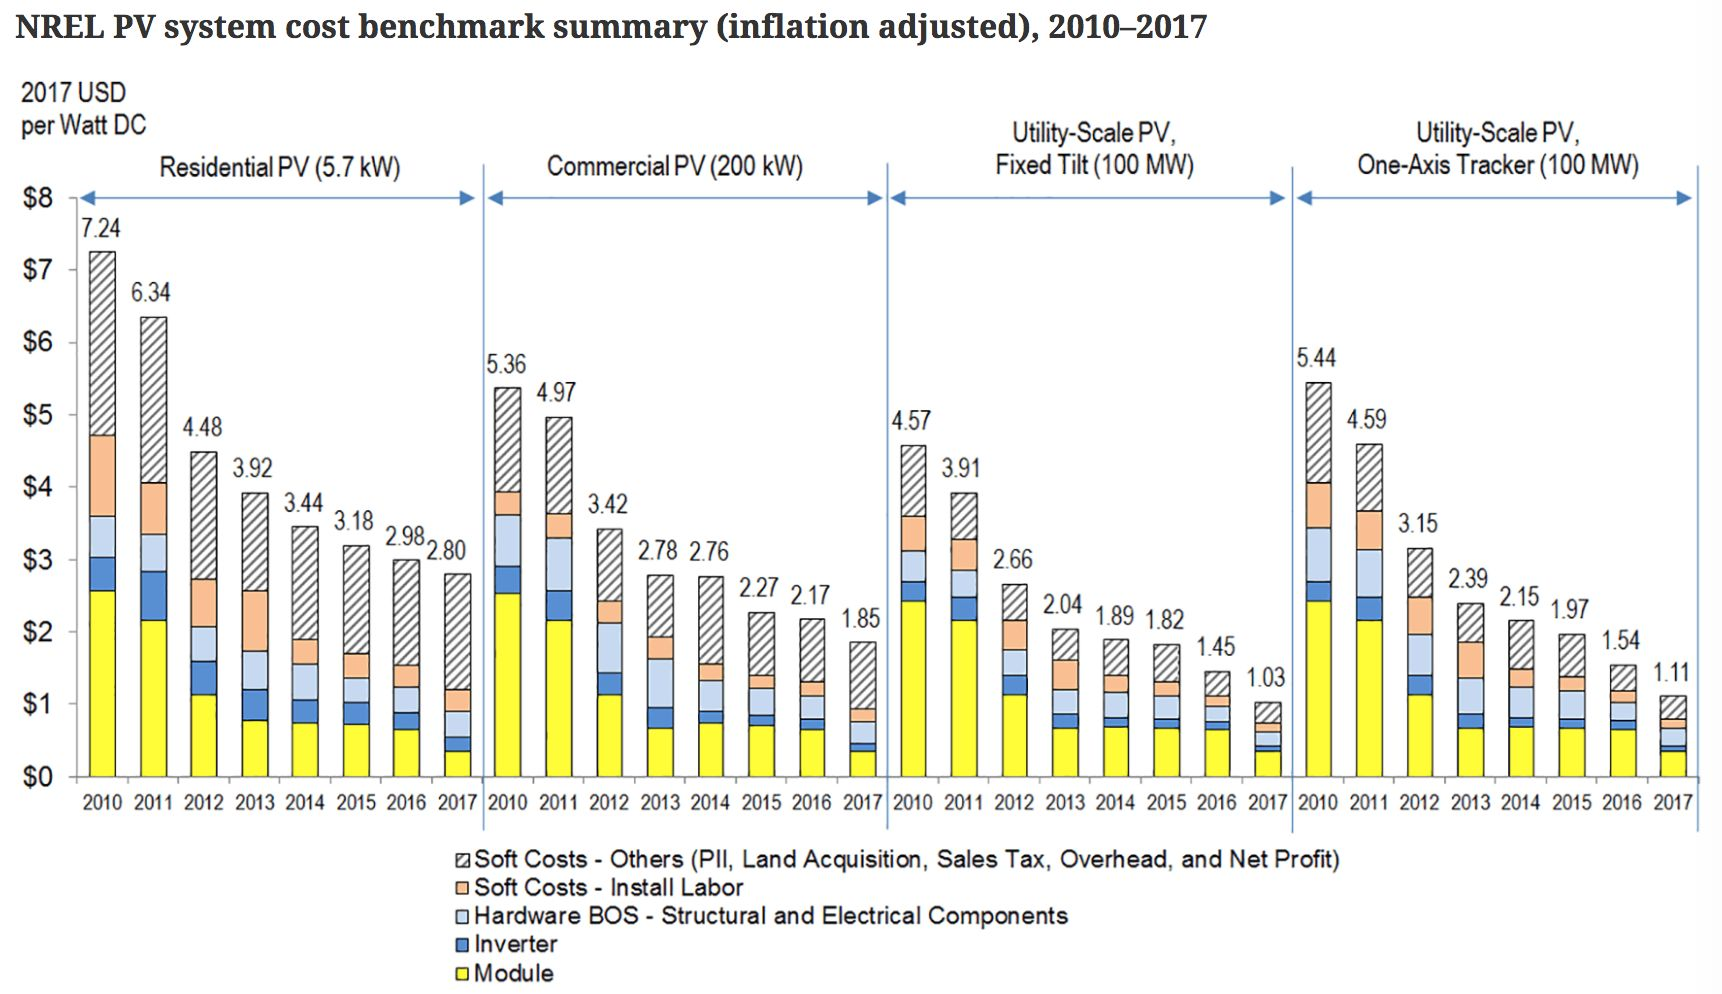 Cost Has Declined To 2 80 Per Watts Dc For Residential Systems 1 85 Watt Commercial Ongoing Reductions In Soft Costs Will Play A Key